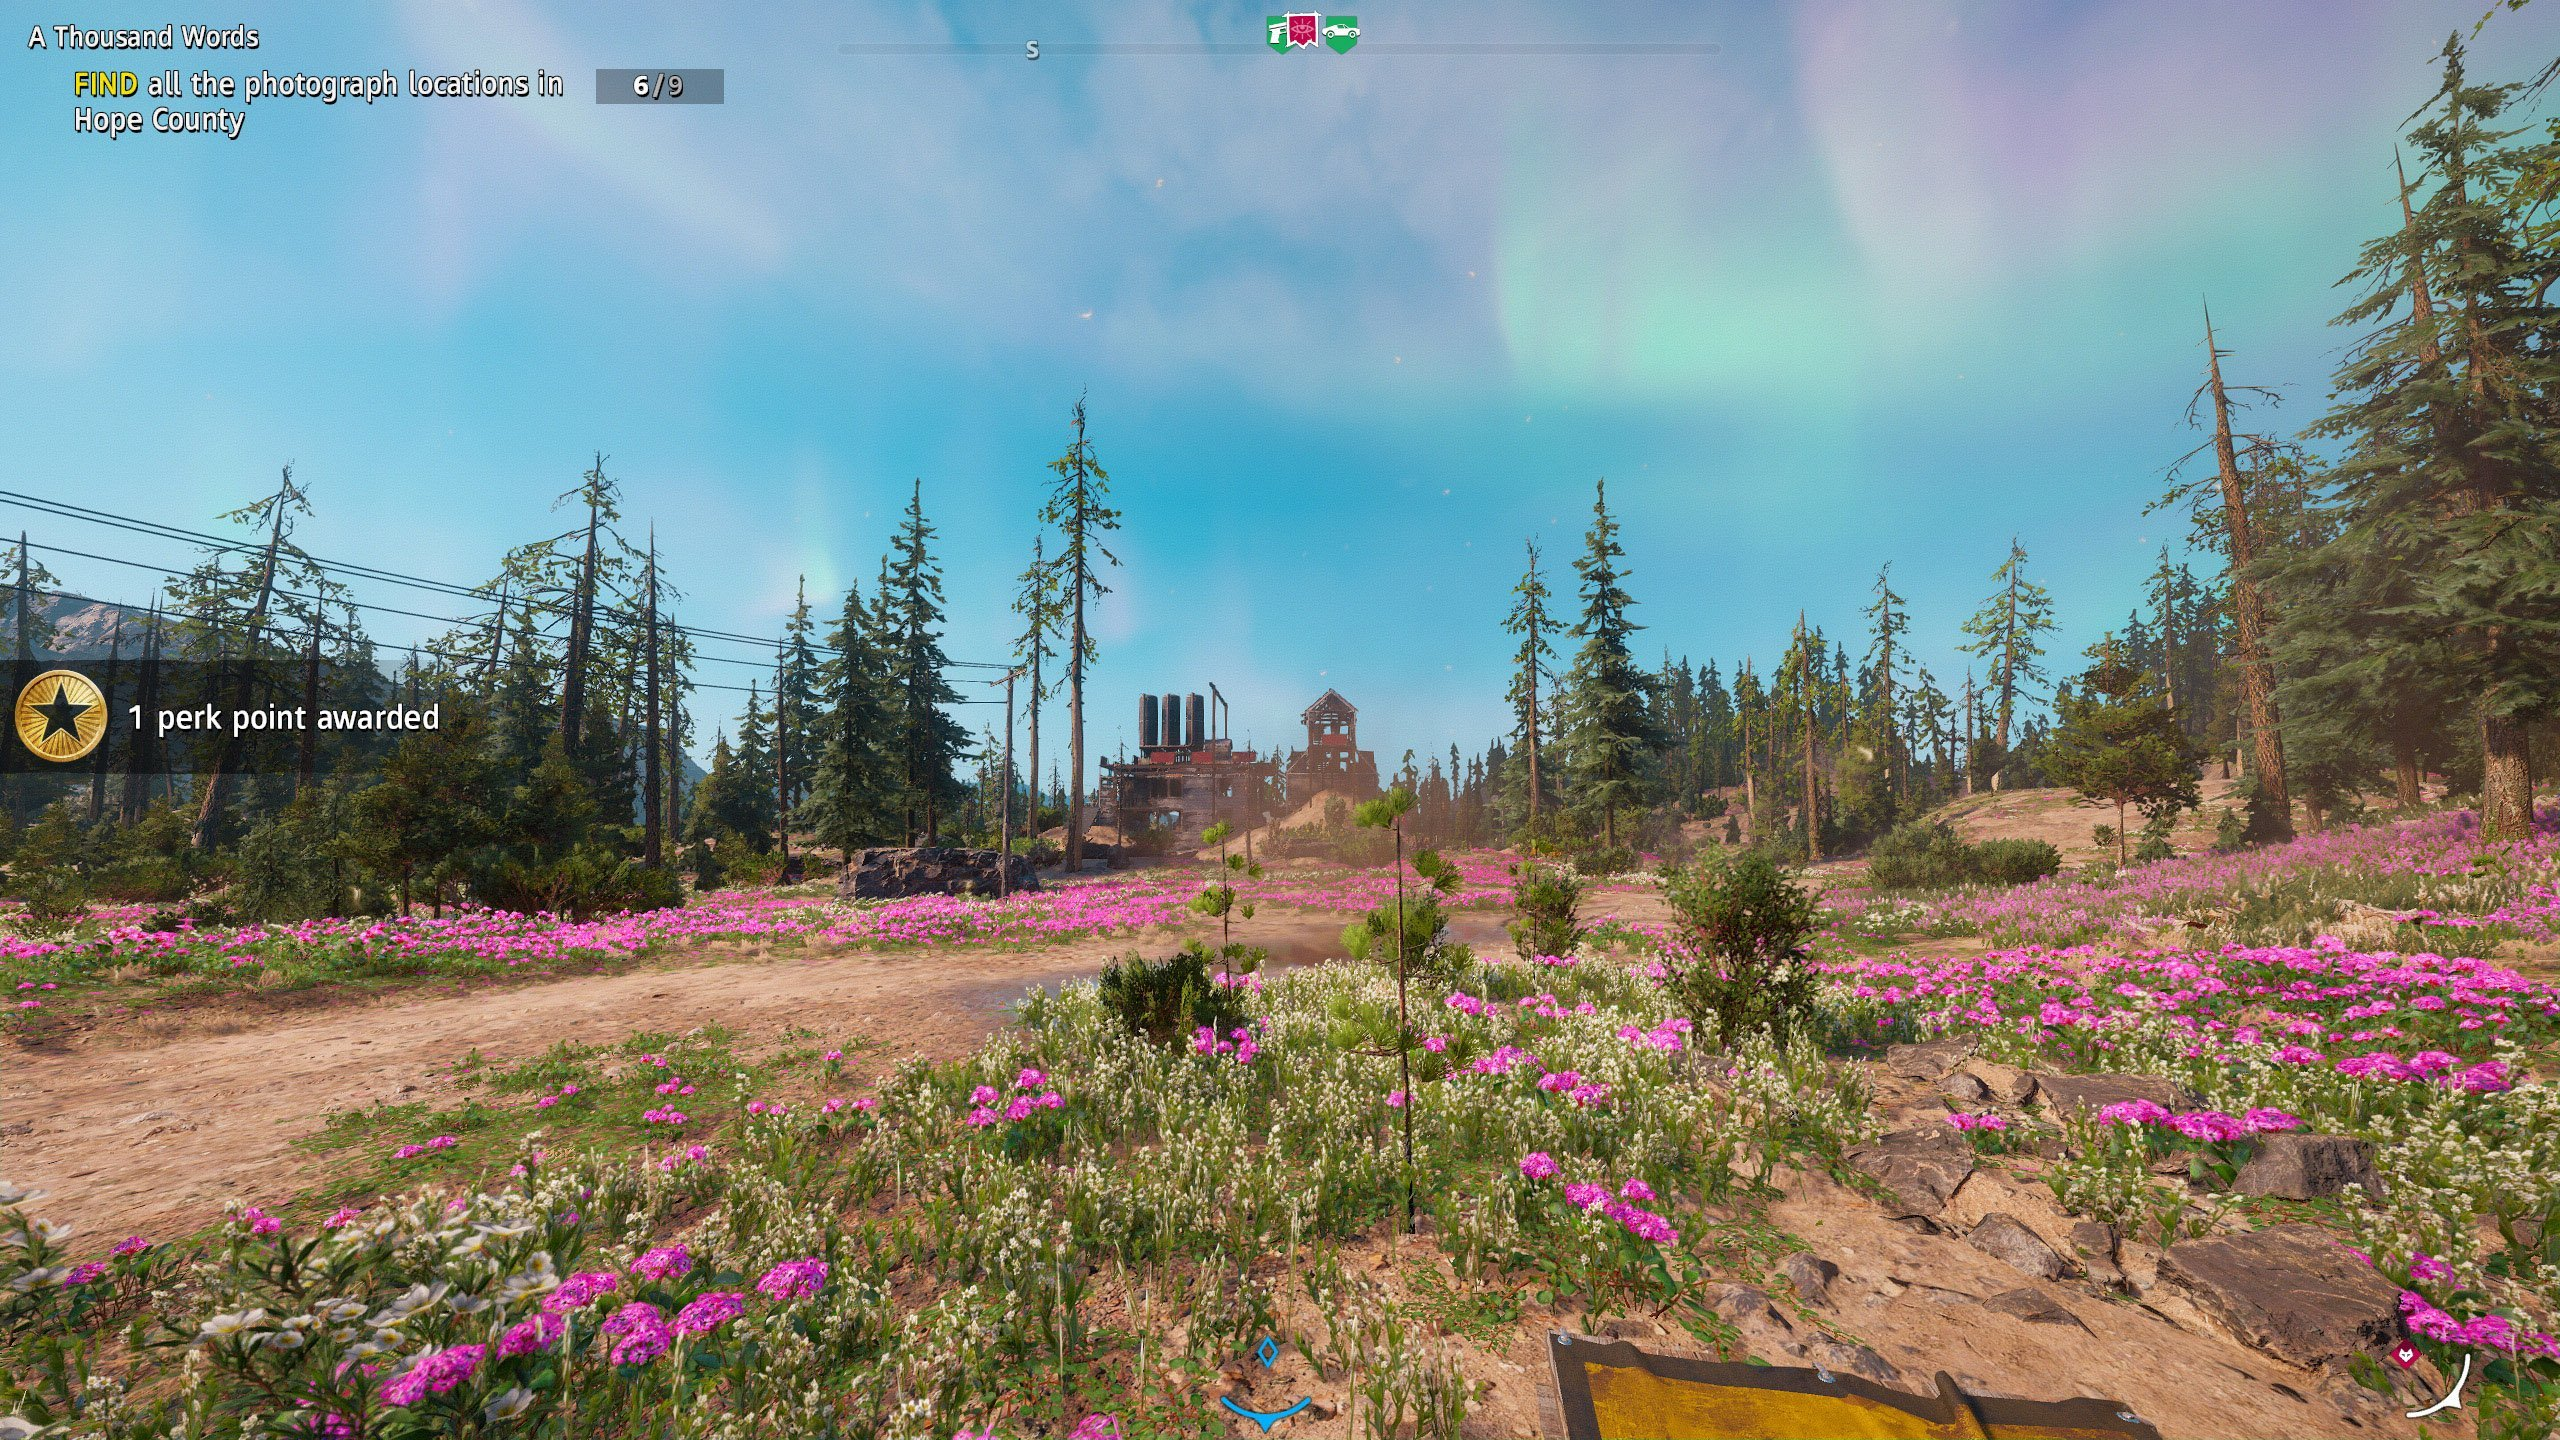 Dear Photograph locations in Far Cry New Dawn